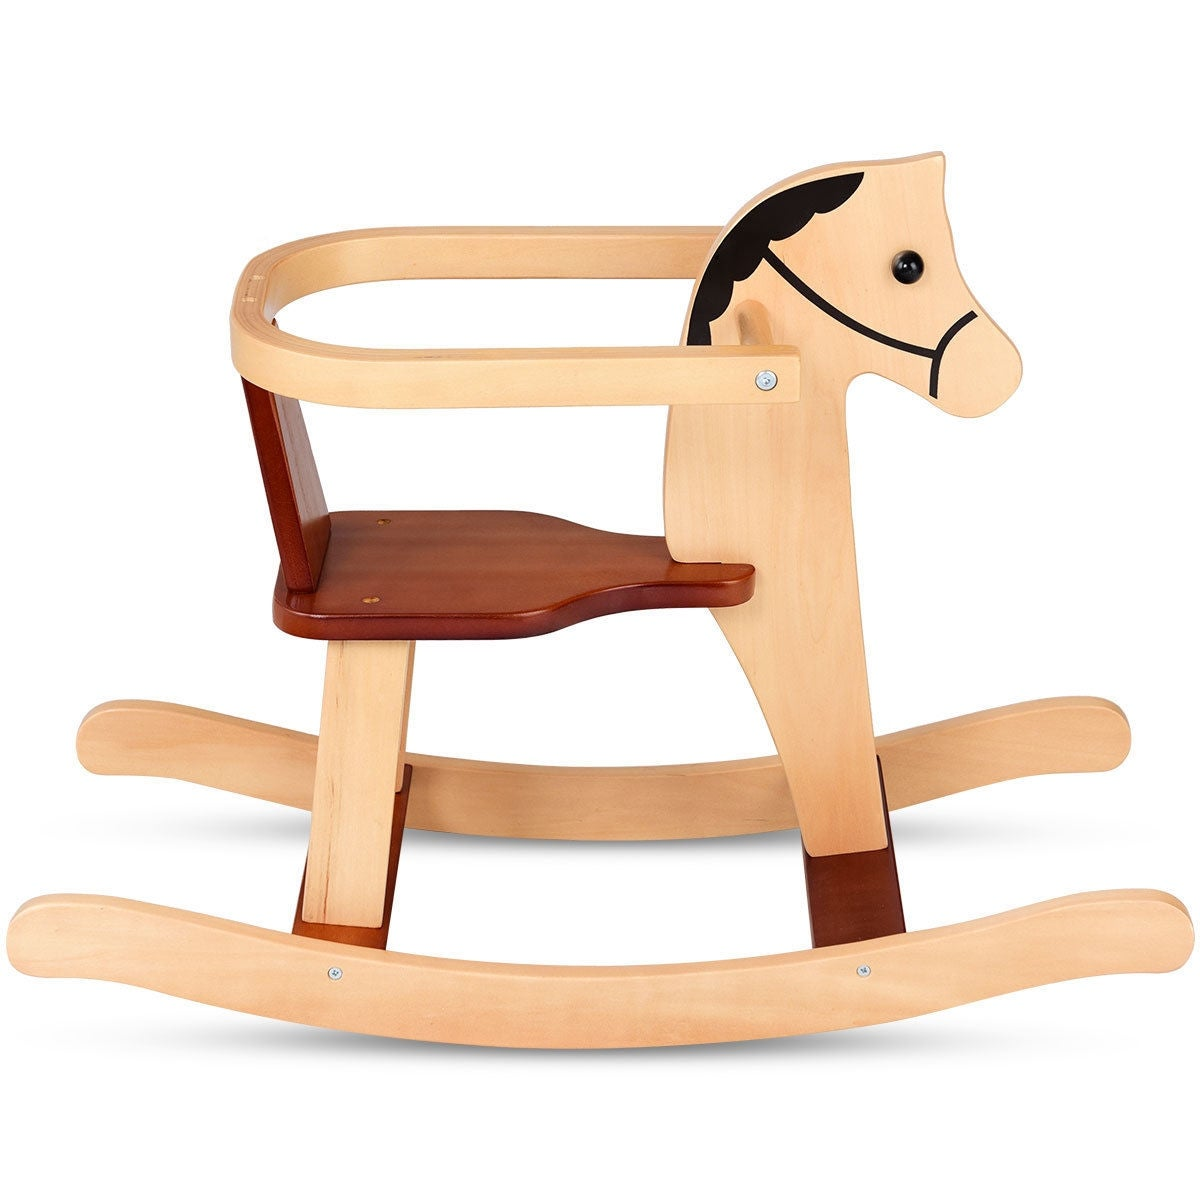 Gymax Baby Kids Toy Wooden Rocking Horse Animal Rider Chair Bar Security Boys Girls As Pic